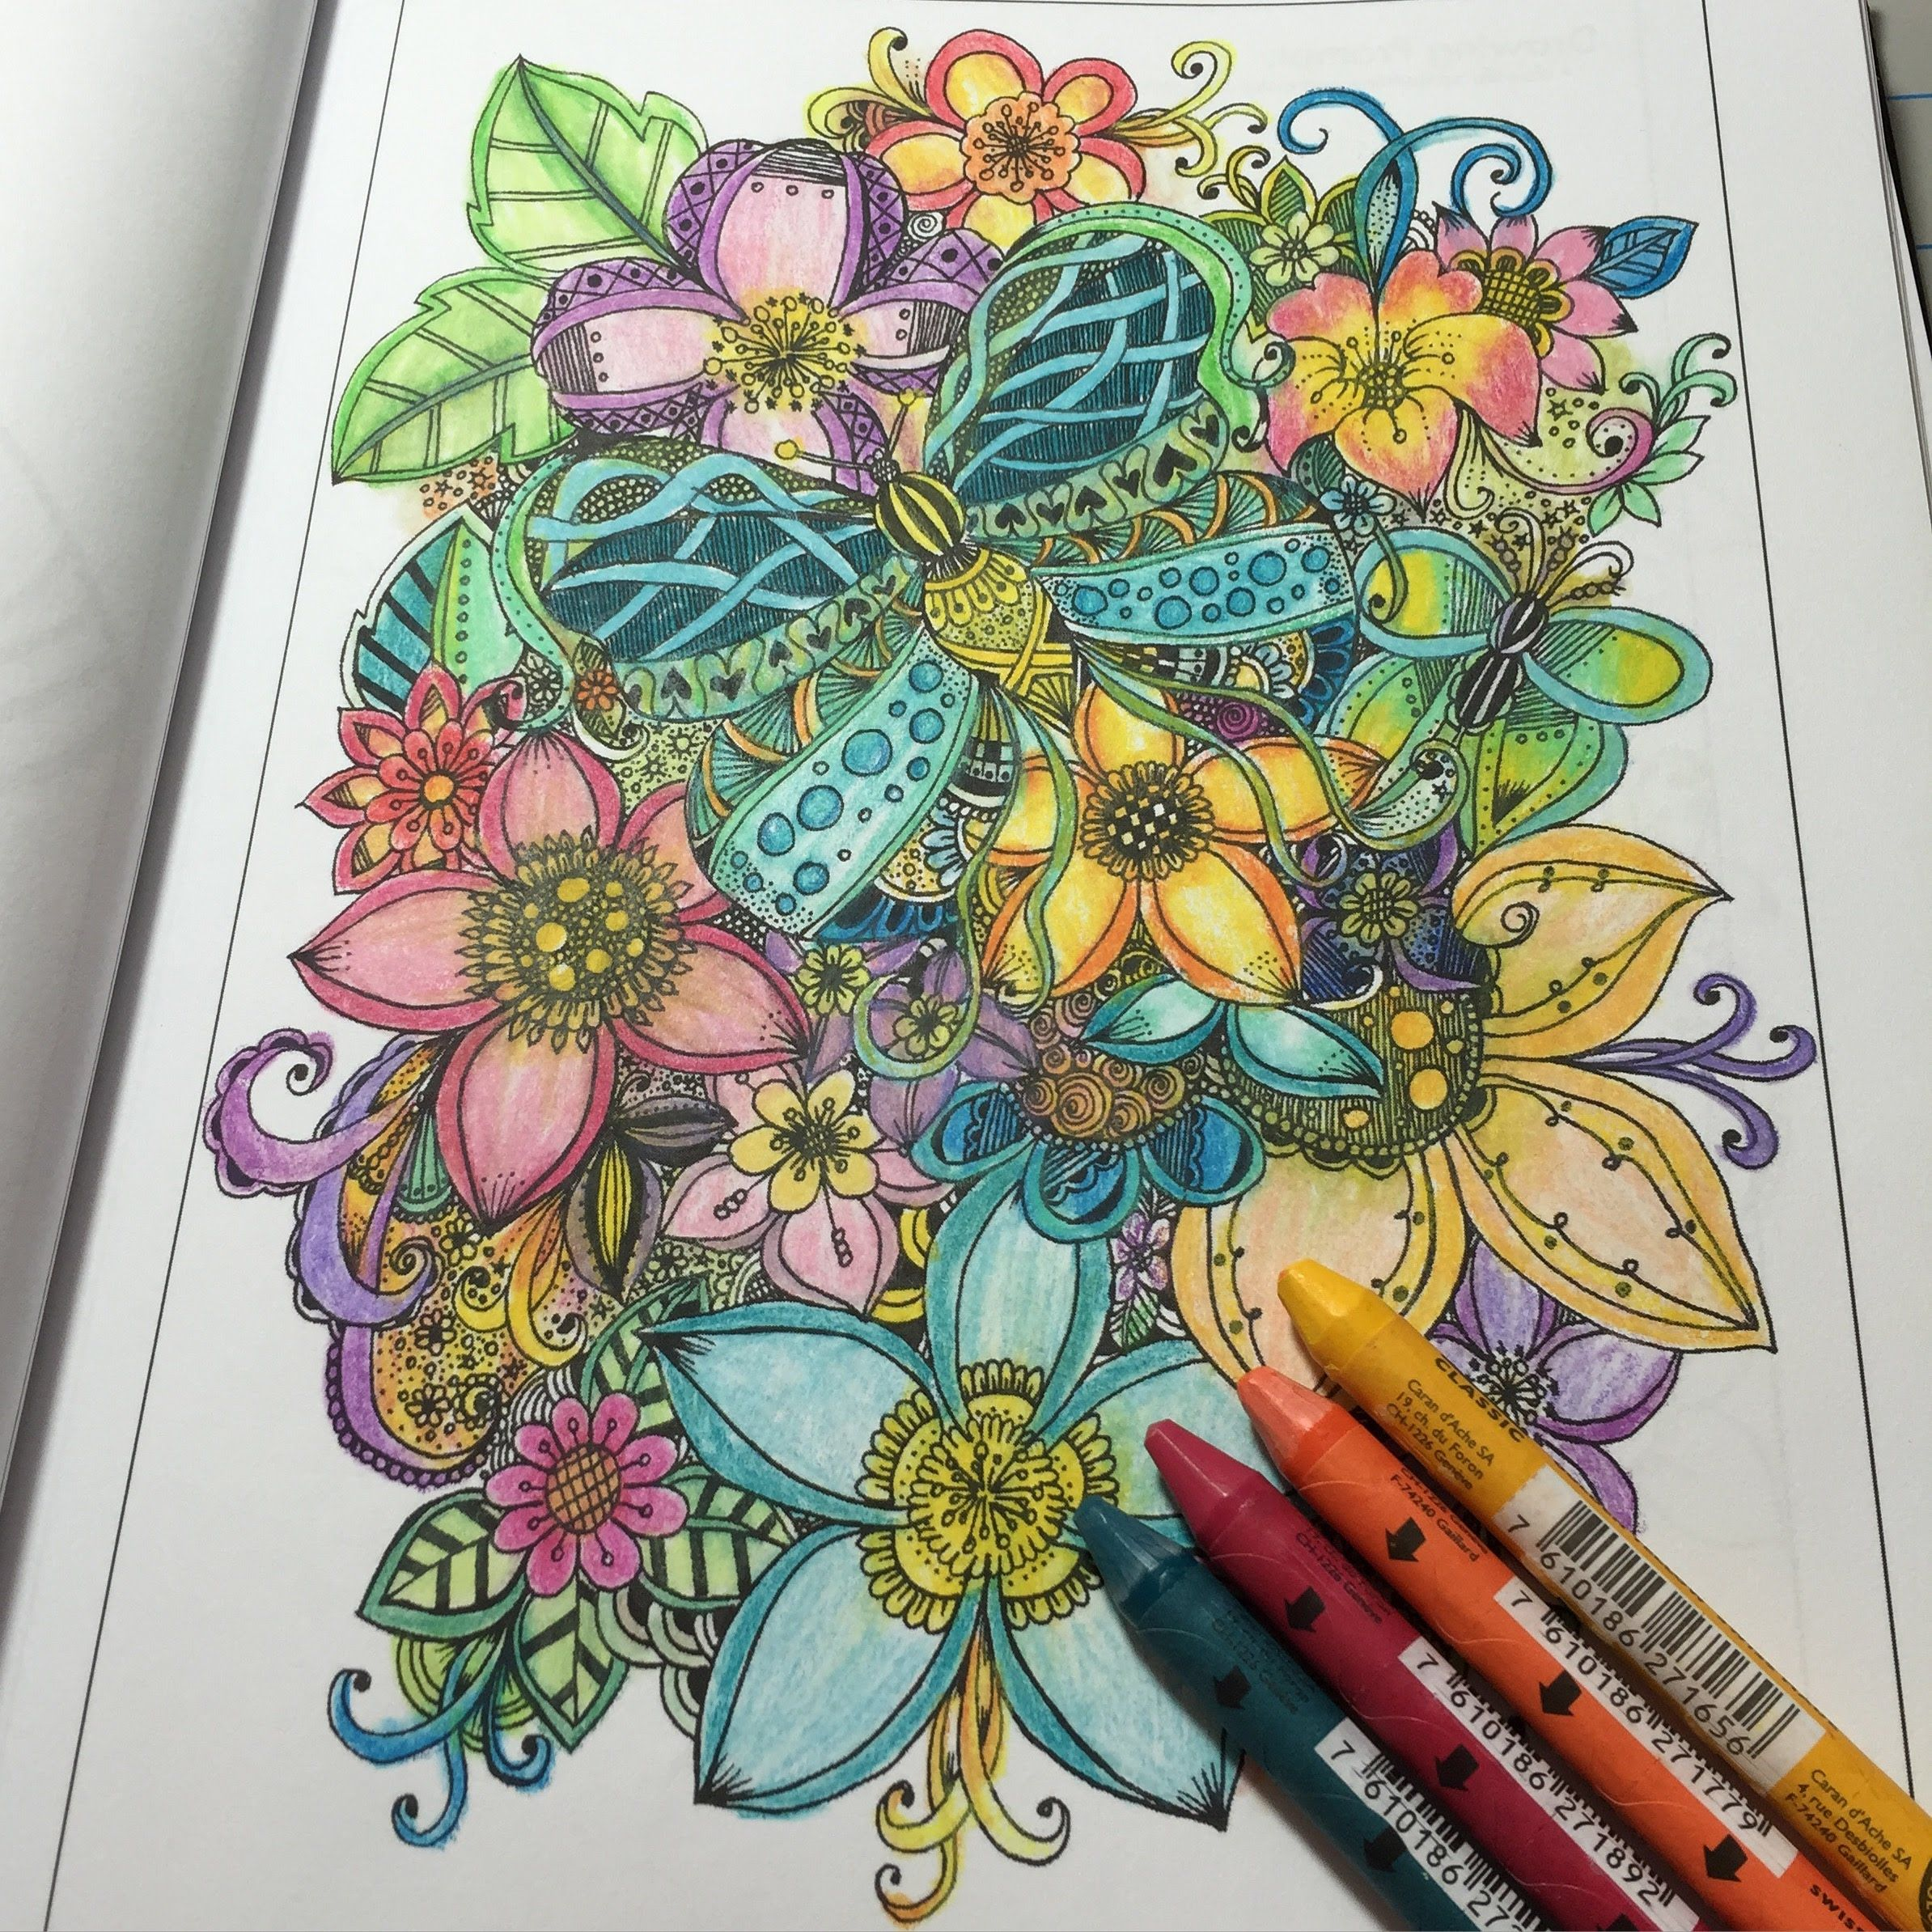 Zen colouring in book - 1000 Images About Watch Me Color On Pinterest Coloring Secret Garden Colouring And The Morning